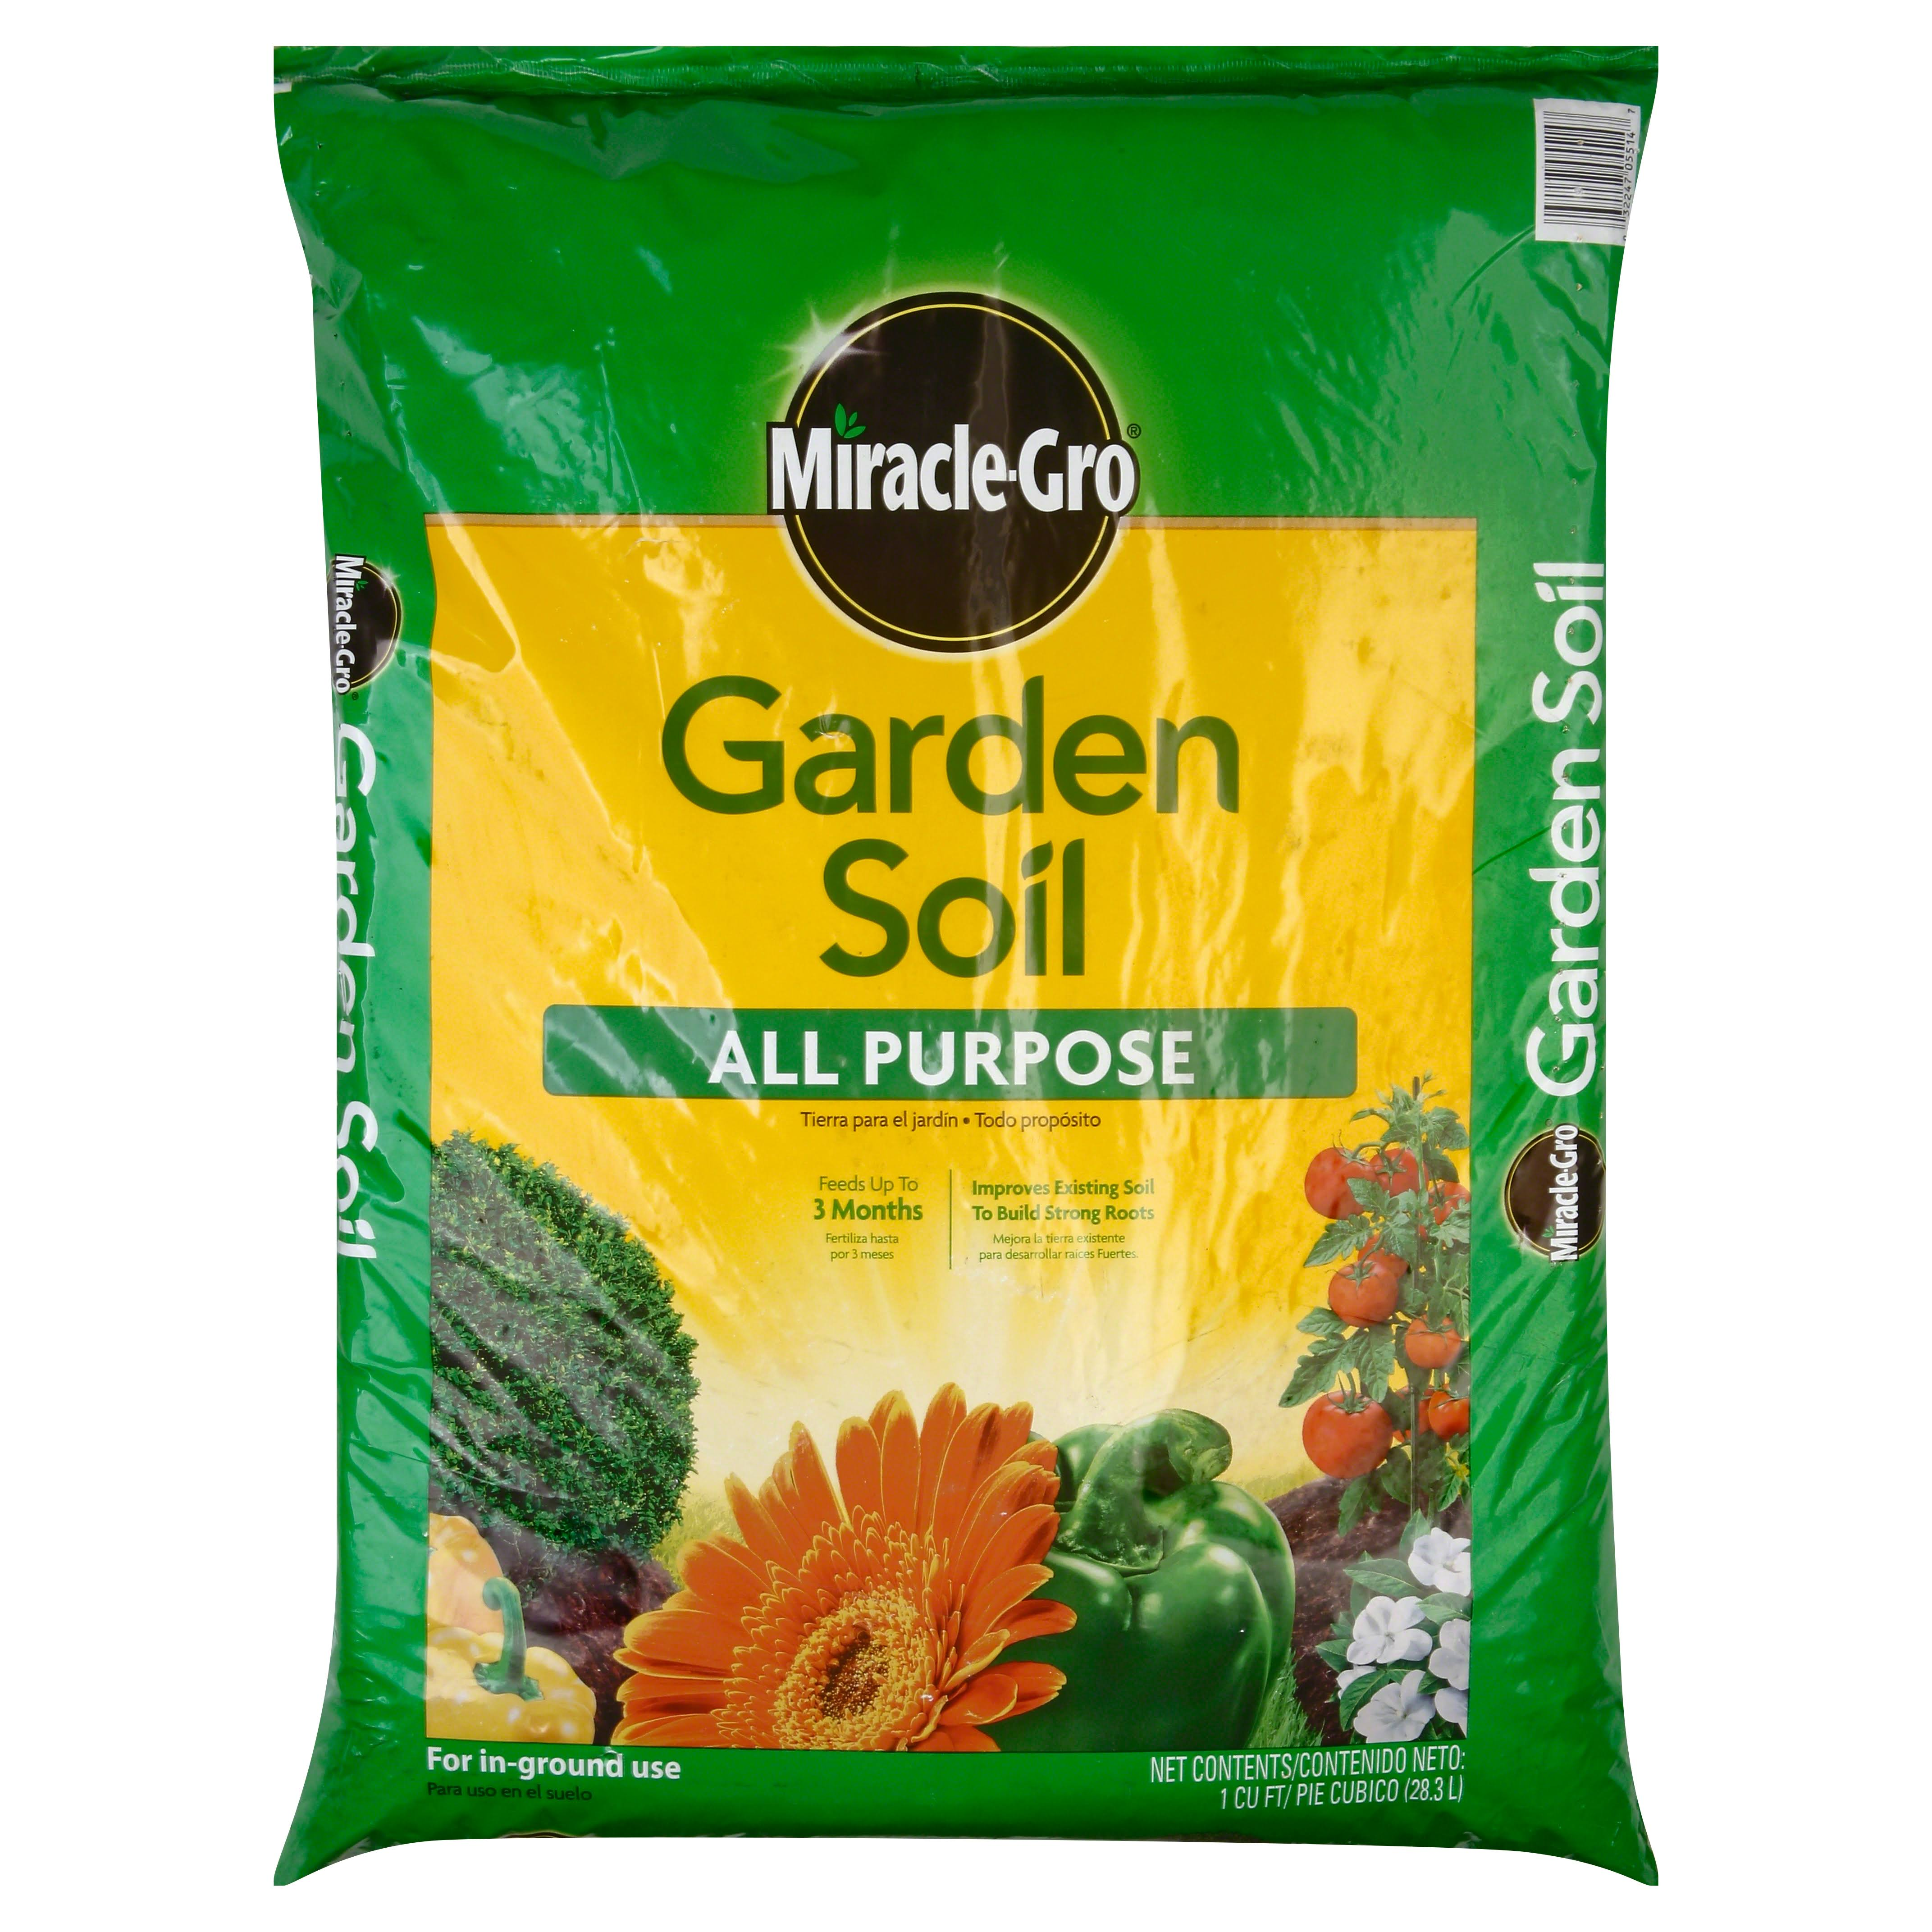 Miracle-gro 70551430 All-purpose Garden Soil - 1cu ft